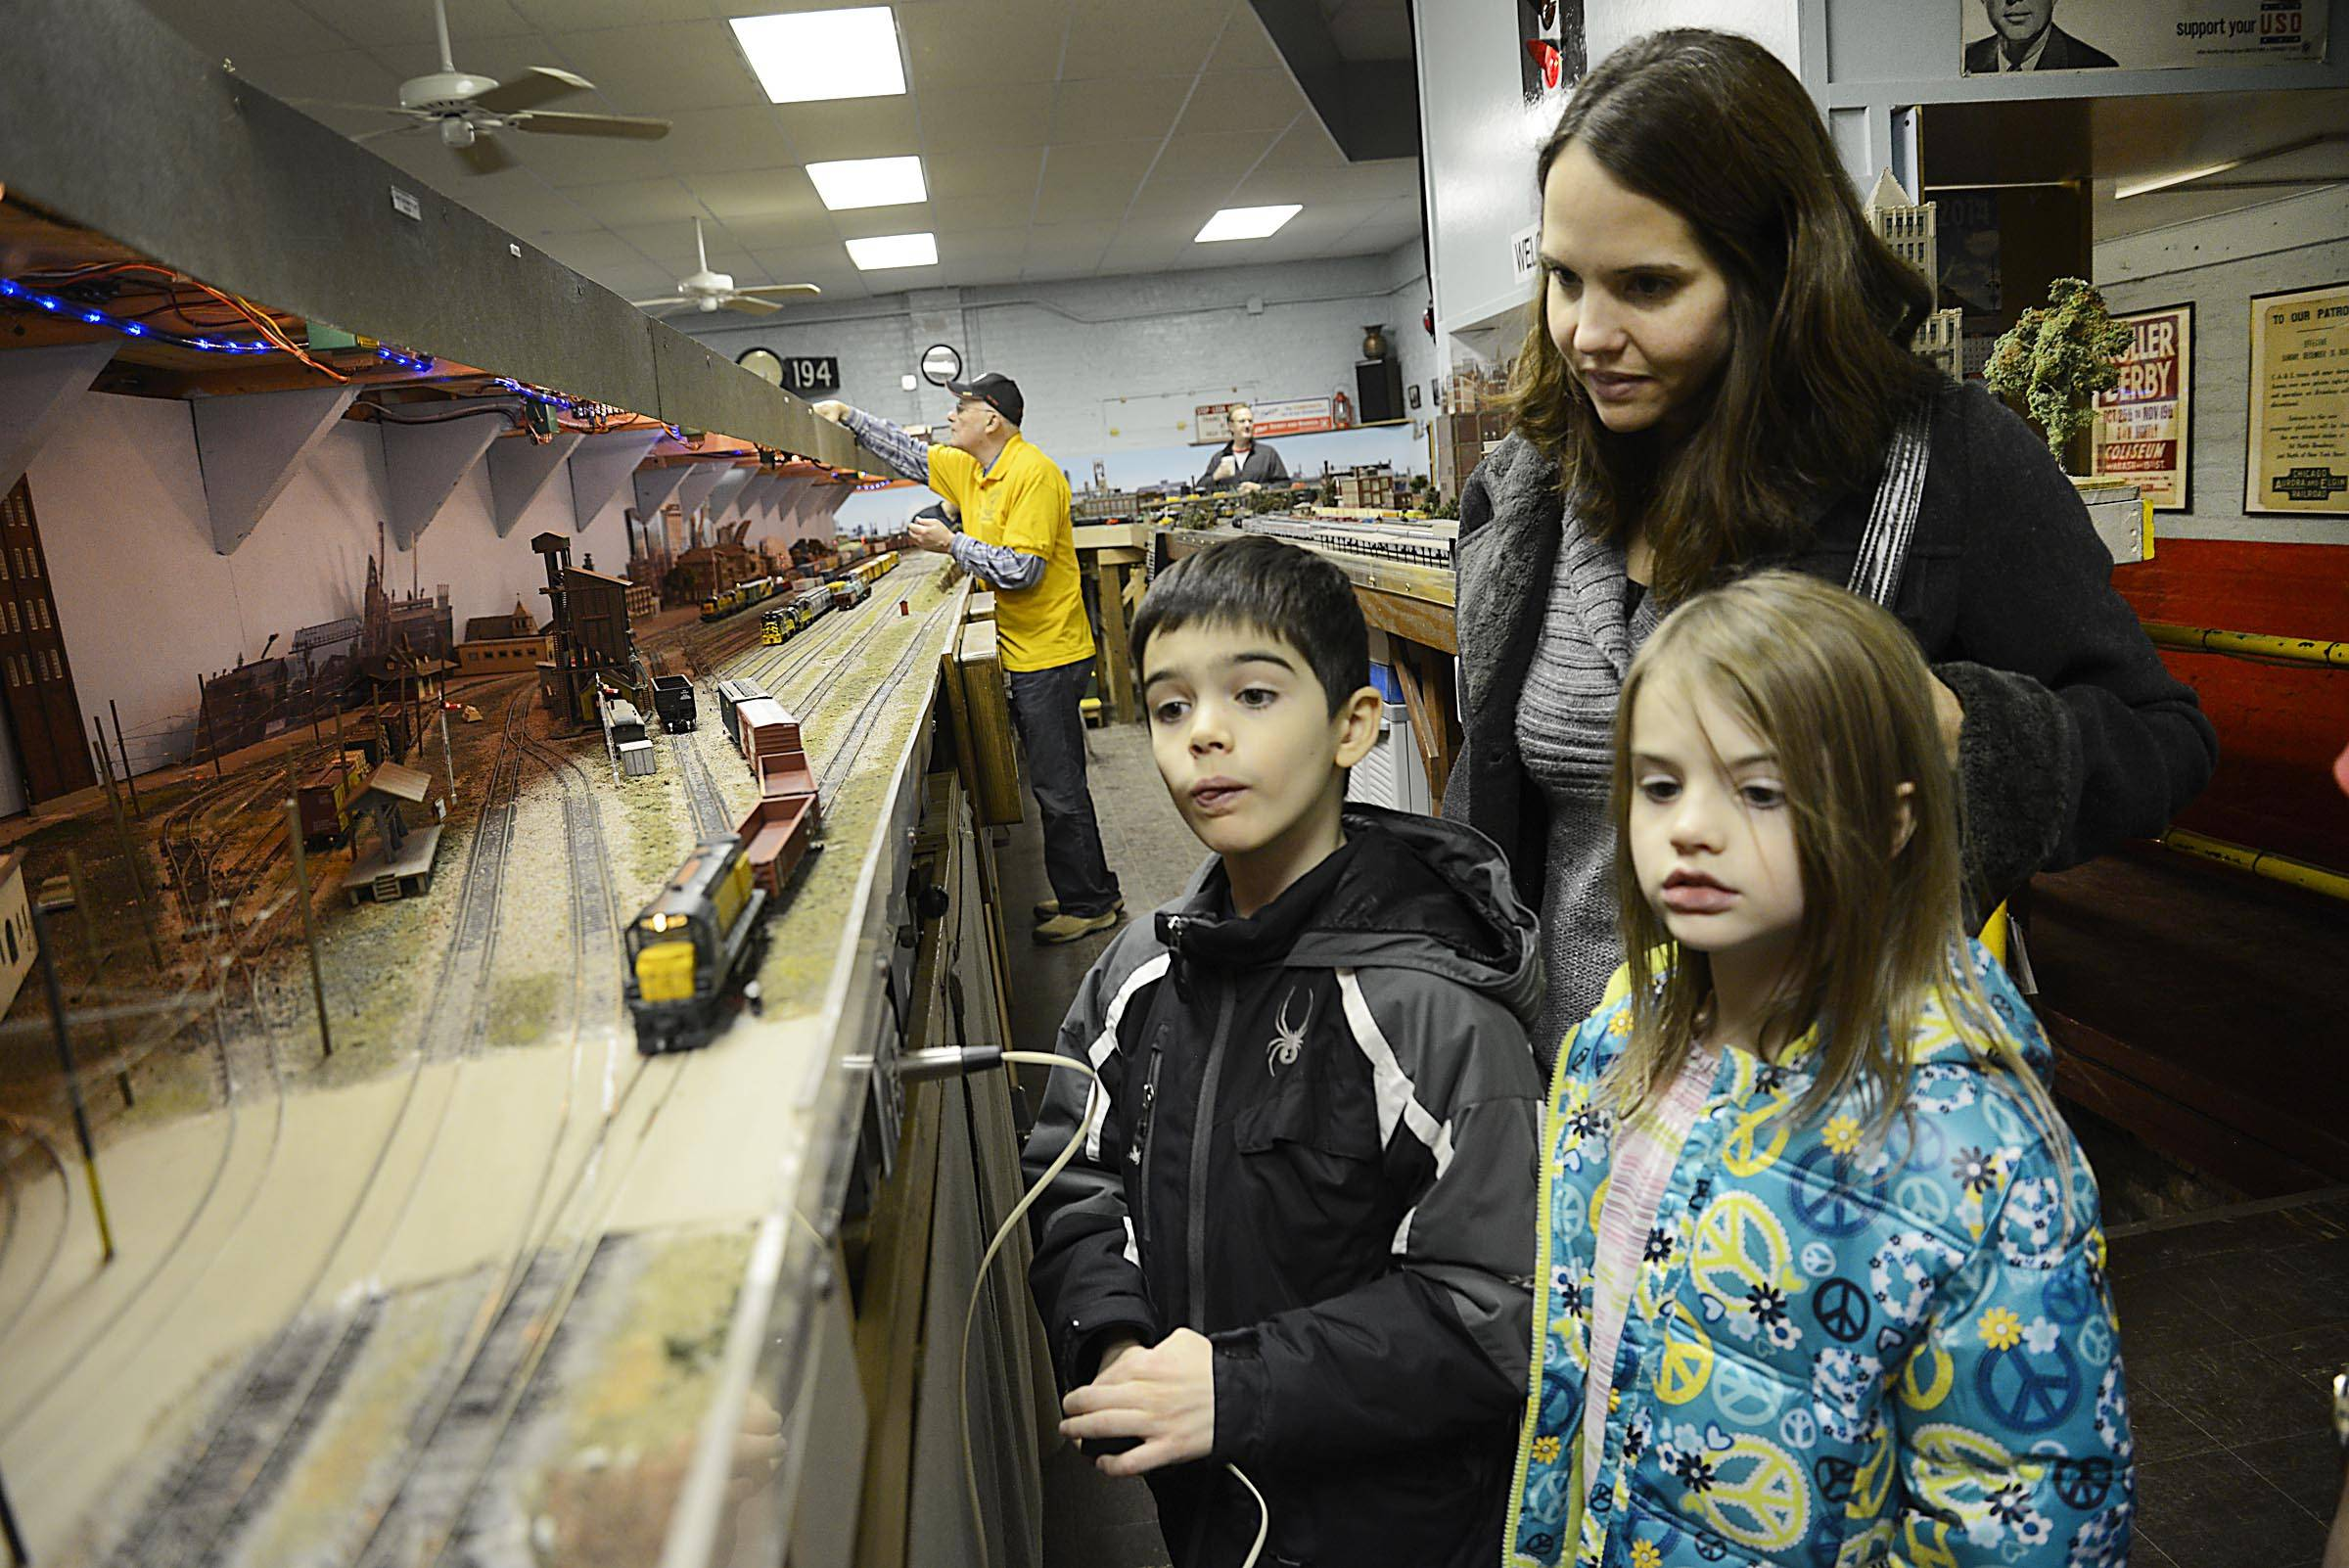 Elijah Hunt, 8, drives a model train as his sister Hannah, 6, and their mom Sarah, of Elgin, watch at the 65th annual Valley Model Railroad Club open house Sunday at the Clintonville Station in South Elgin.